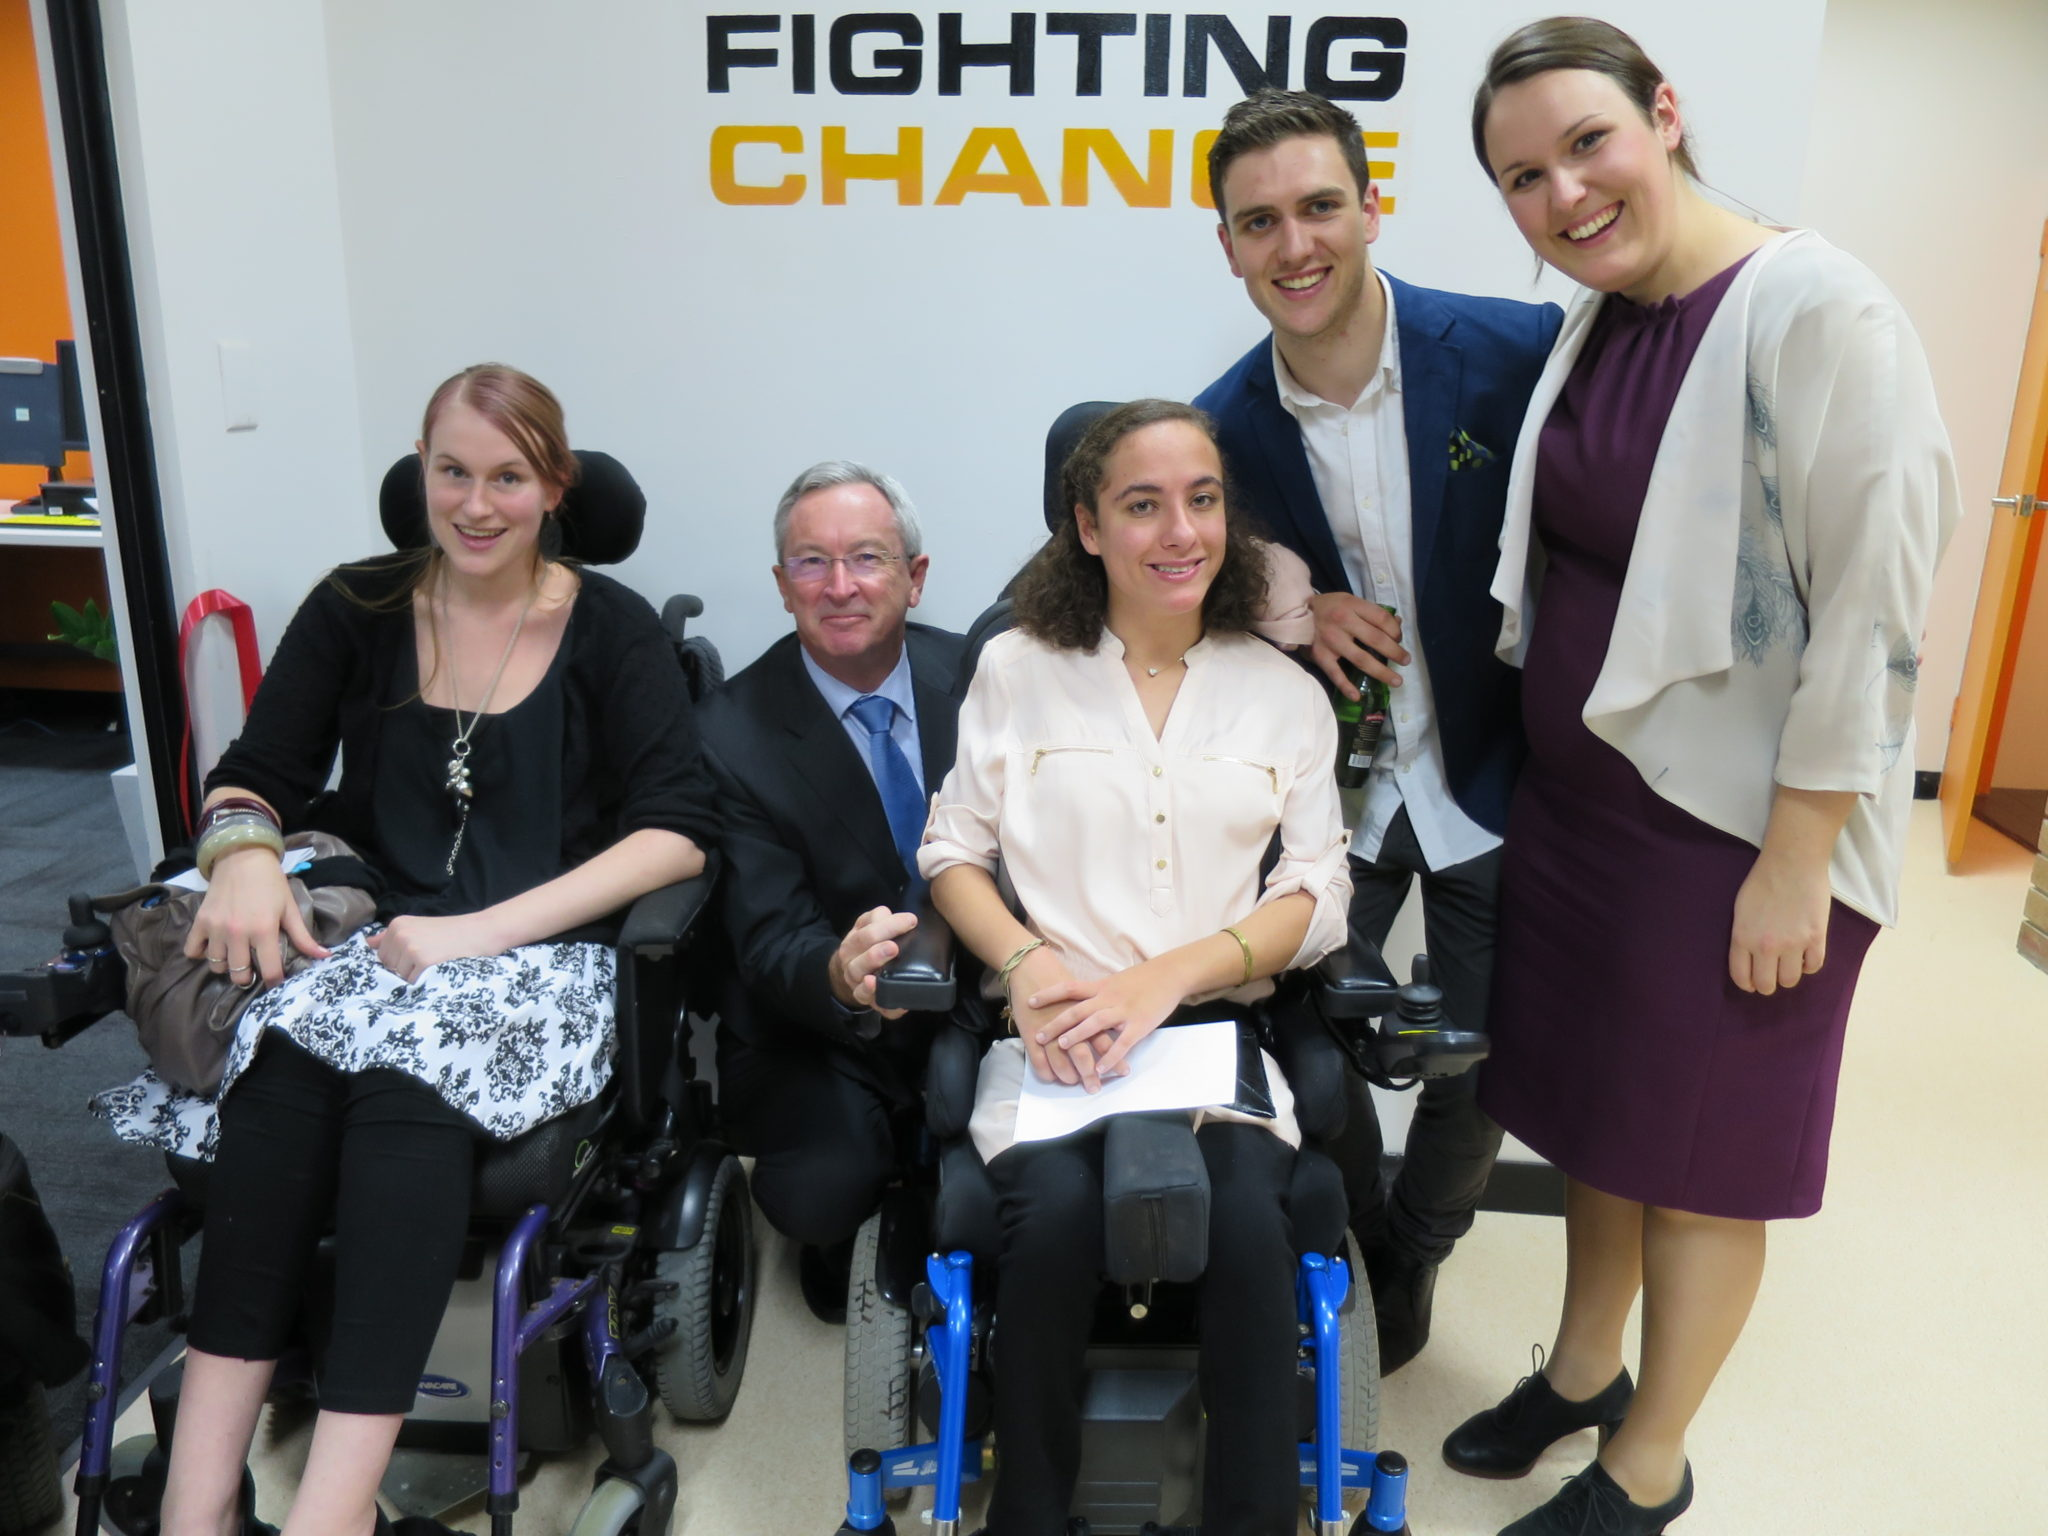 FIGHTING CHANCE – GRAND OPENING OF NEW PREMISES